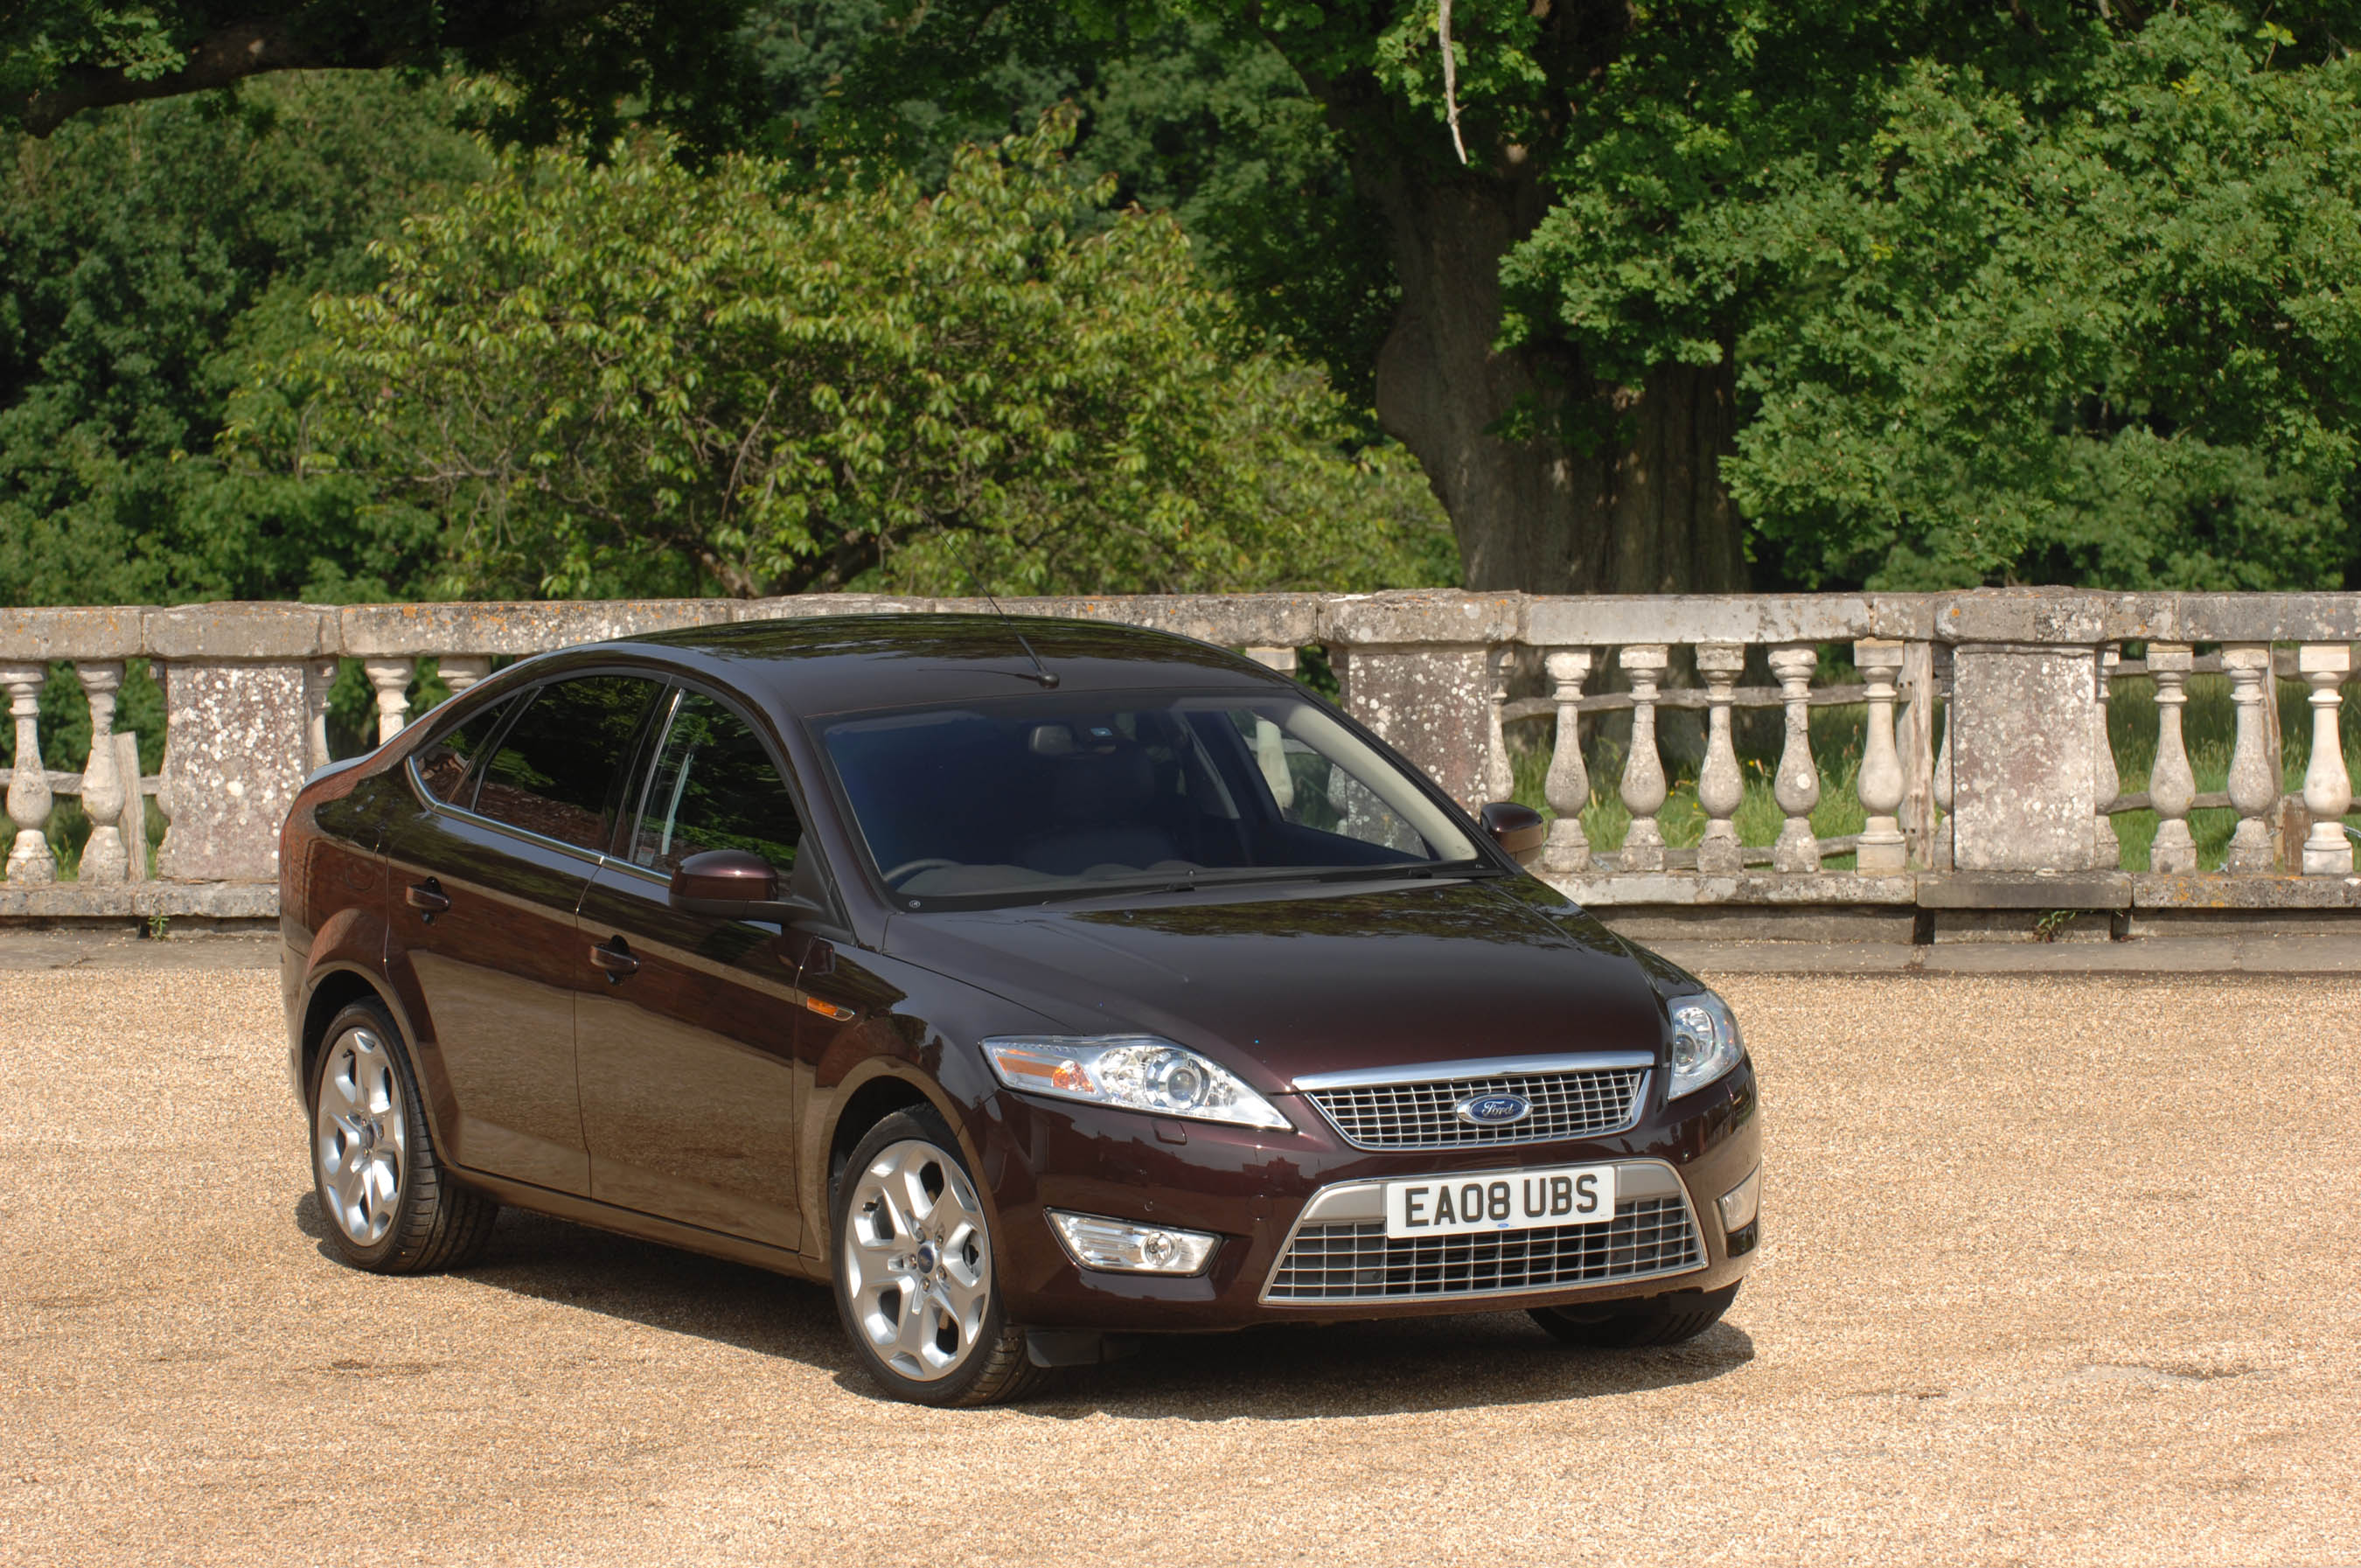 2008 mondeo 2 2 tdci titanium x 5dr picture 8280. Black Bedroom Furniture Sets. Home Design Ideas